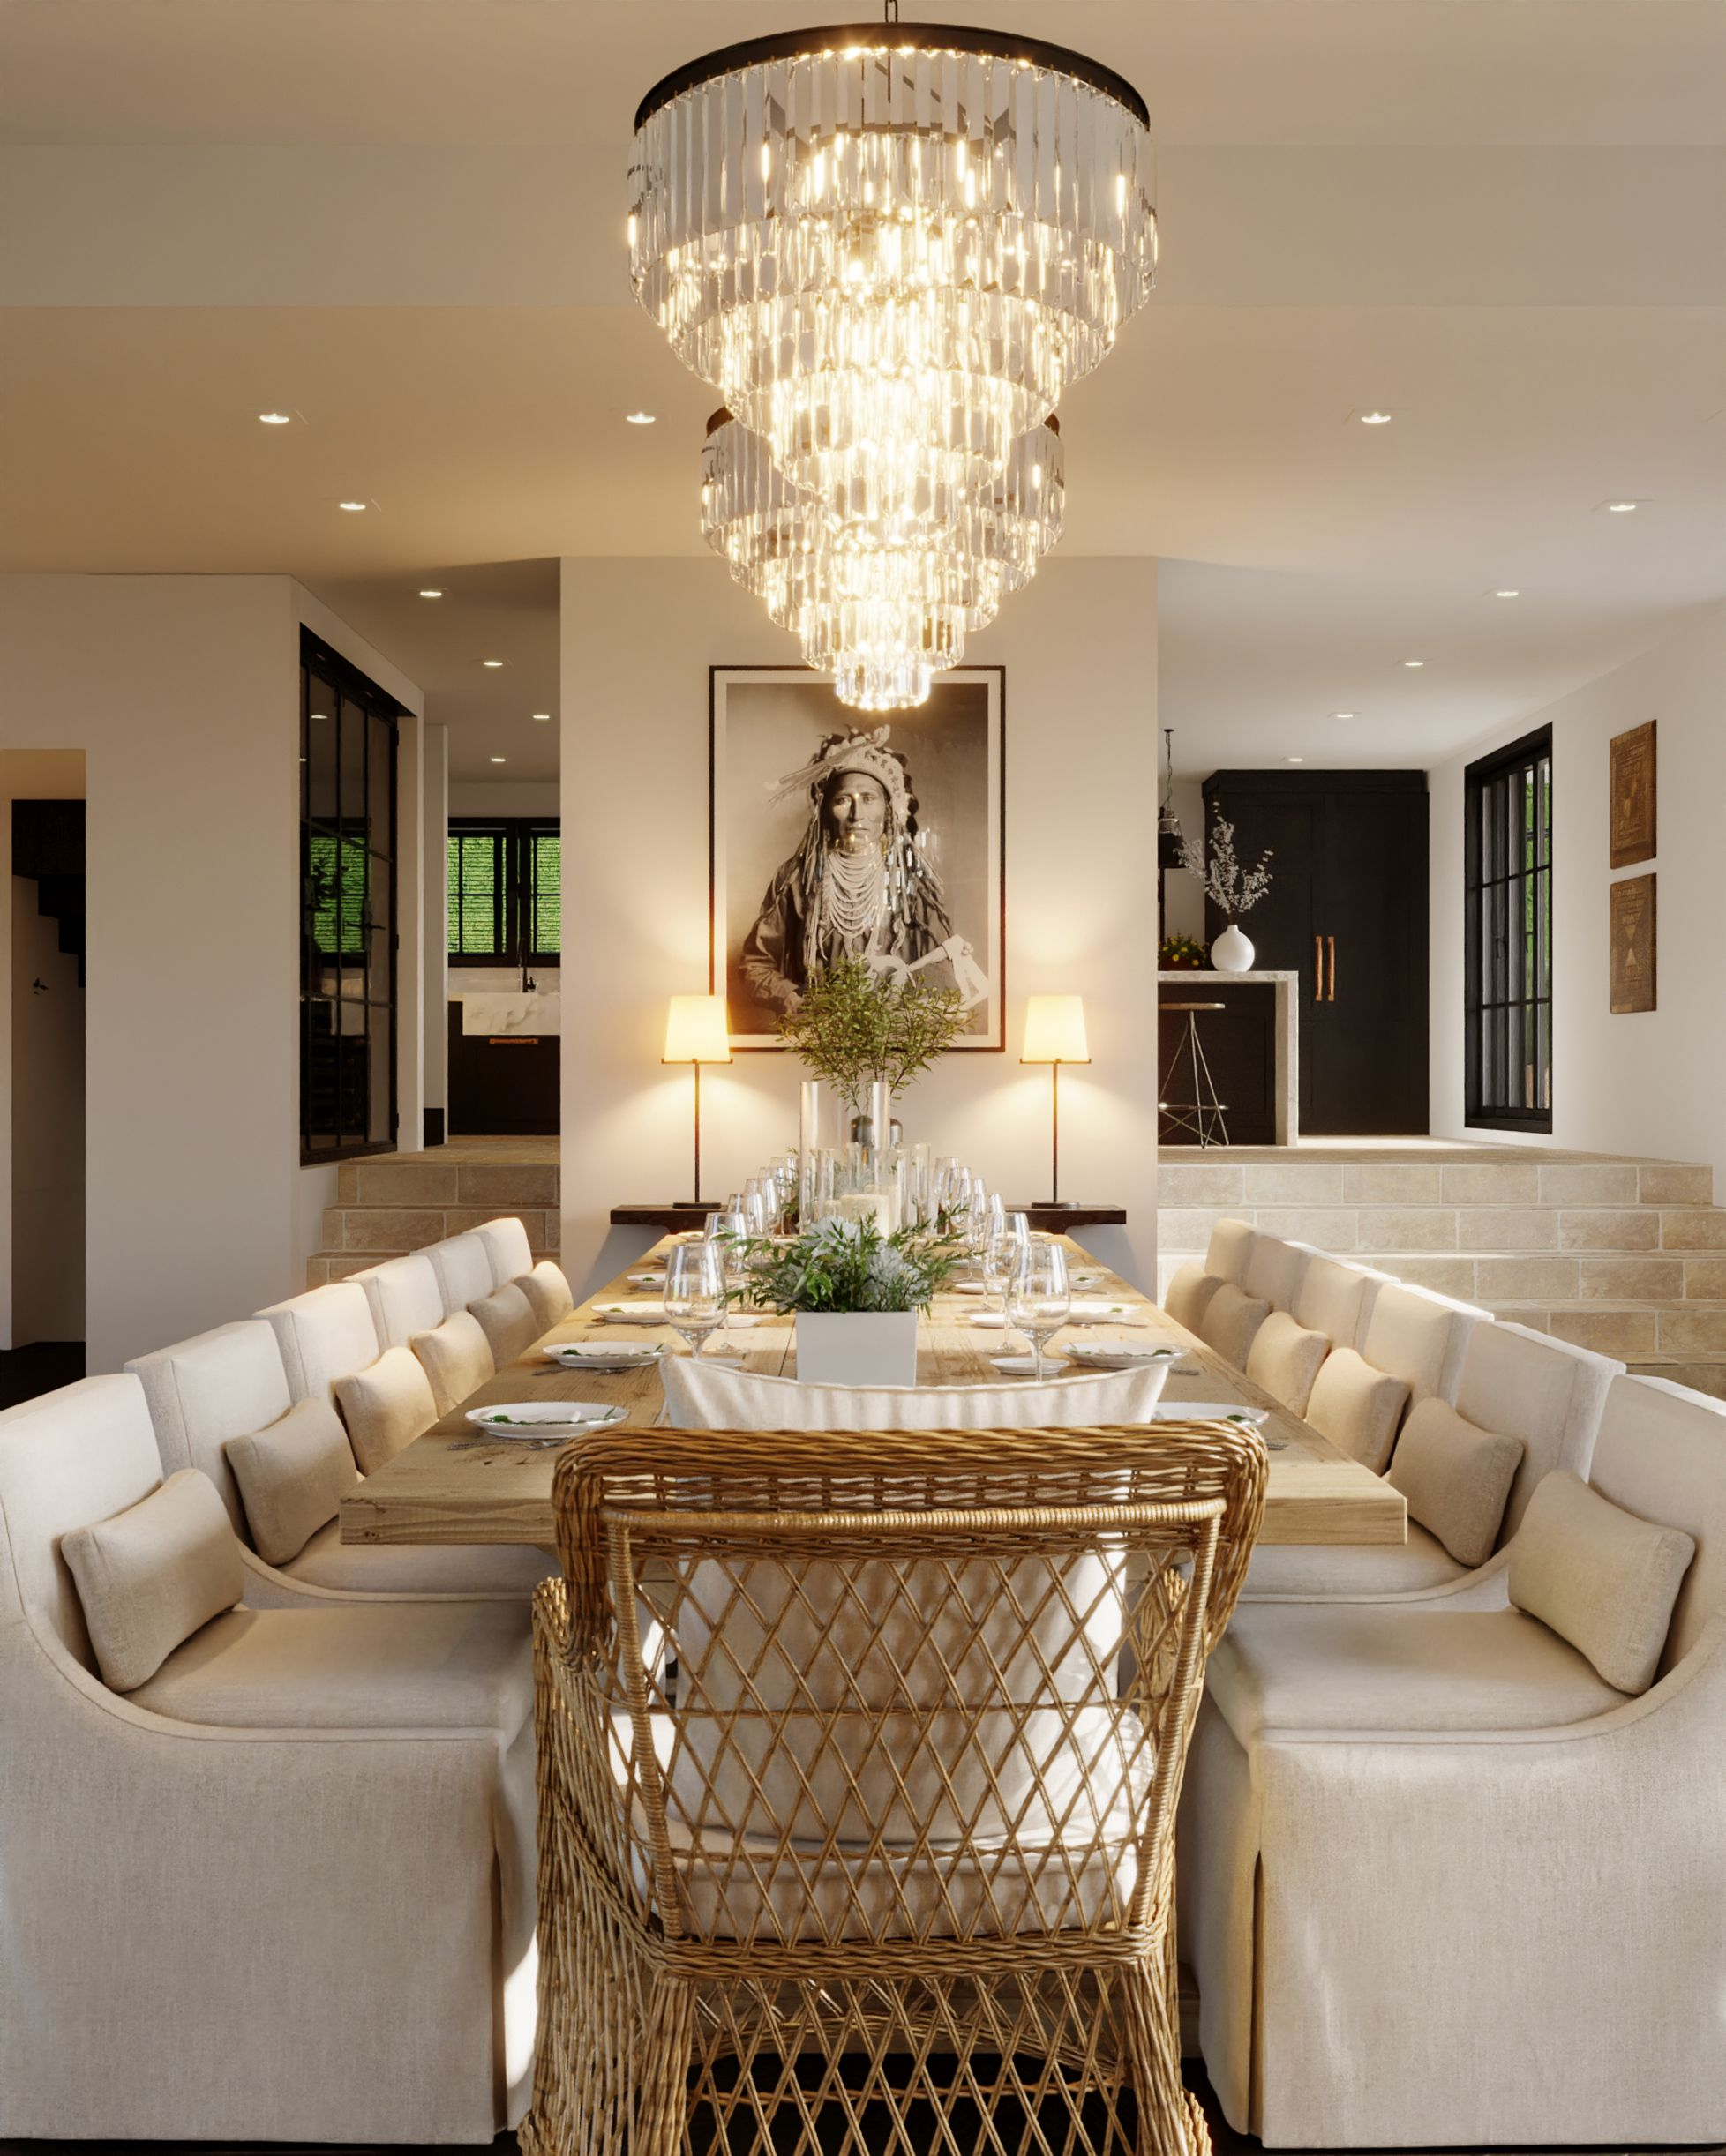 zurich Fall In Love With The Top Interior Designers From Zurich Rougemont Interiors GmbH